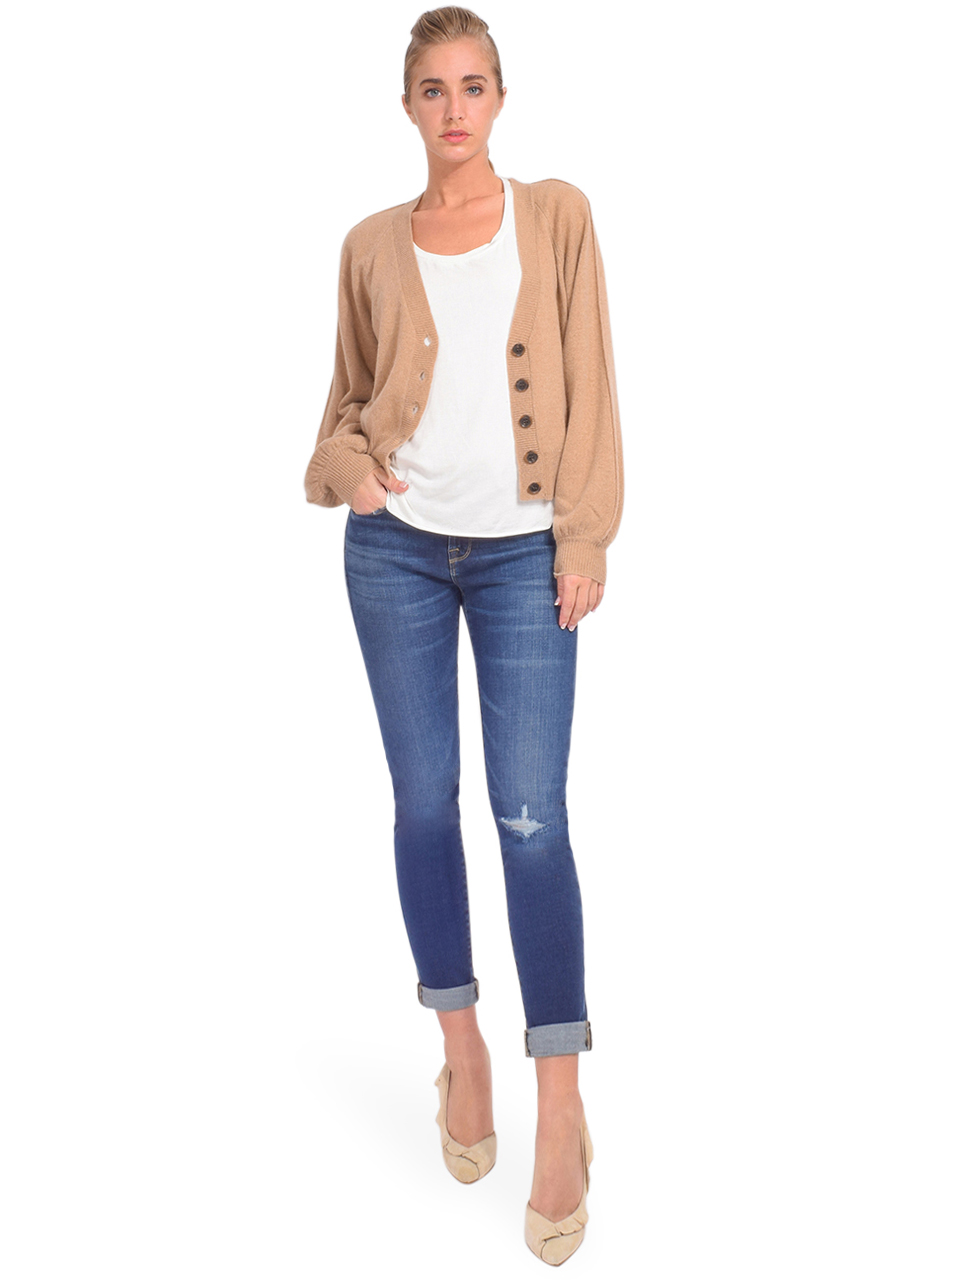 FRAME Le Garcon Straight Leg Jean in Caribou Full Outfit